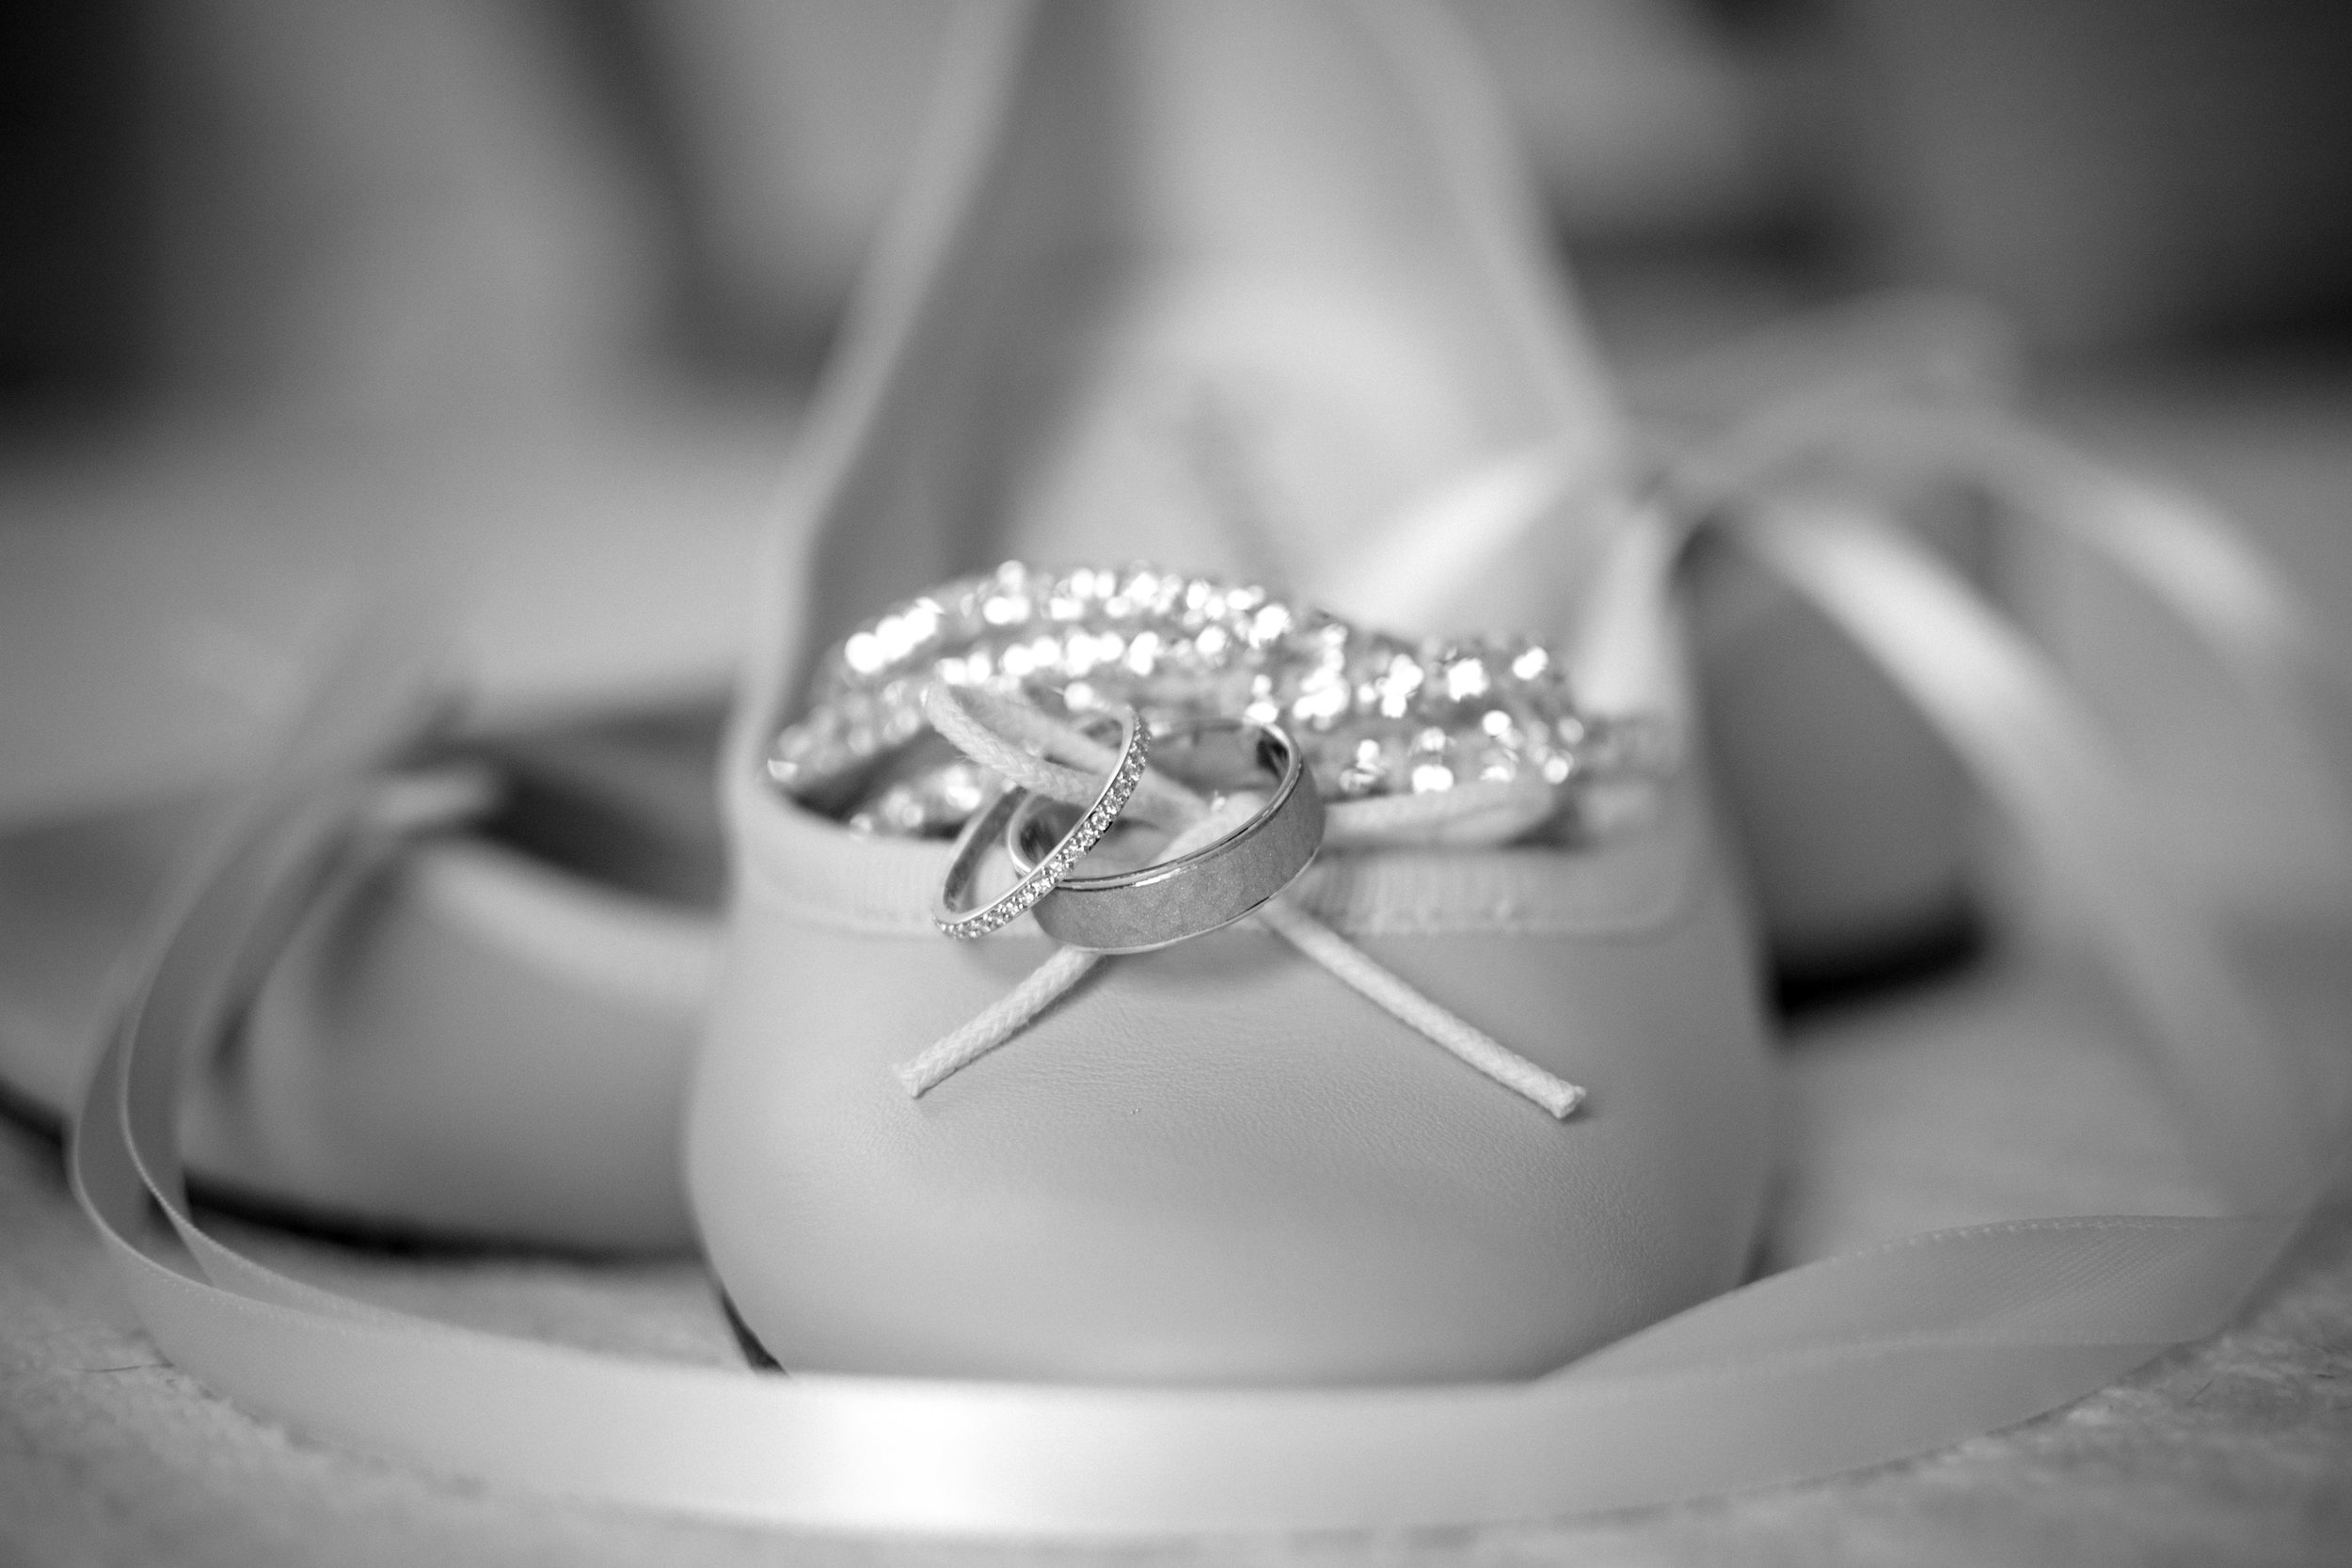 Rings and shoes wedding details.jpg